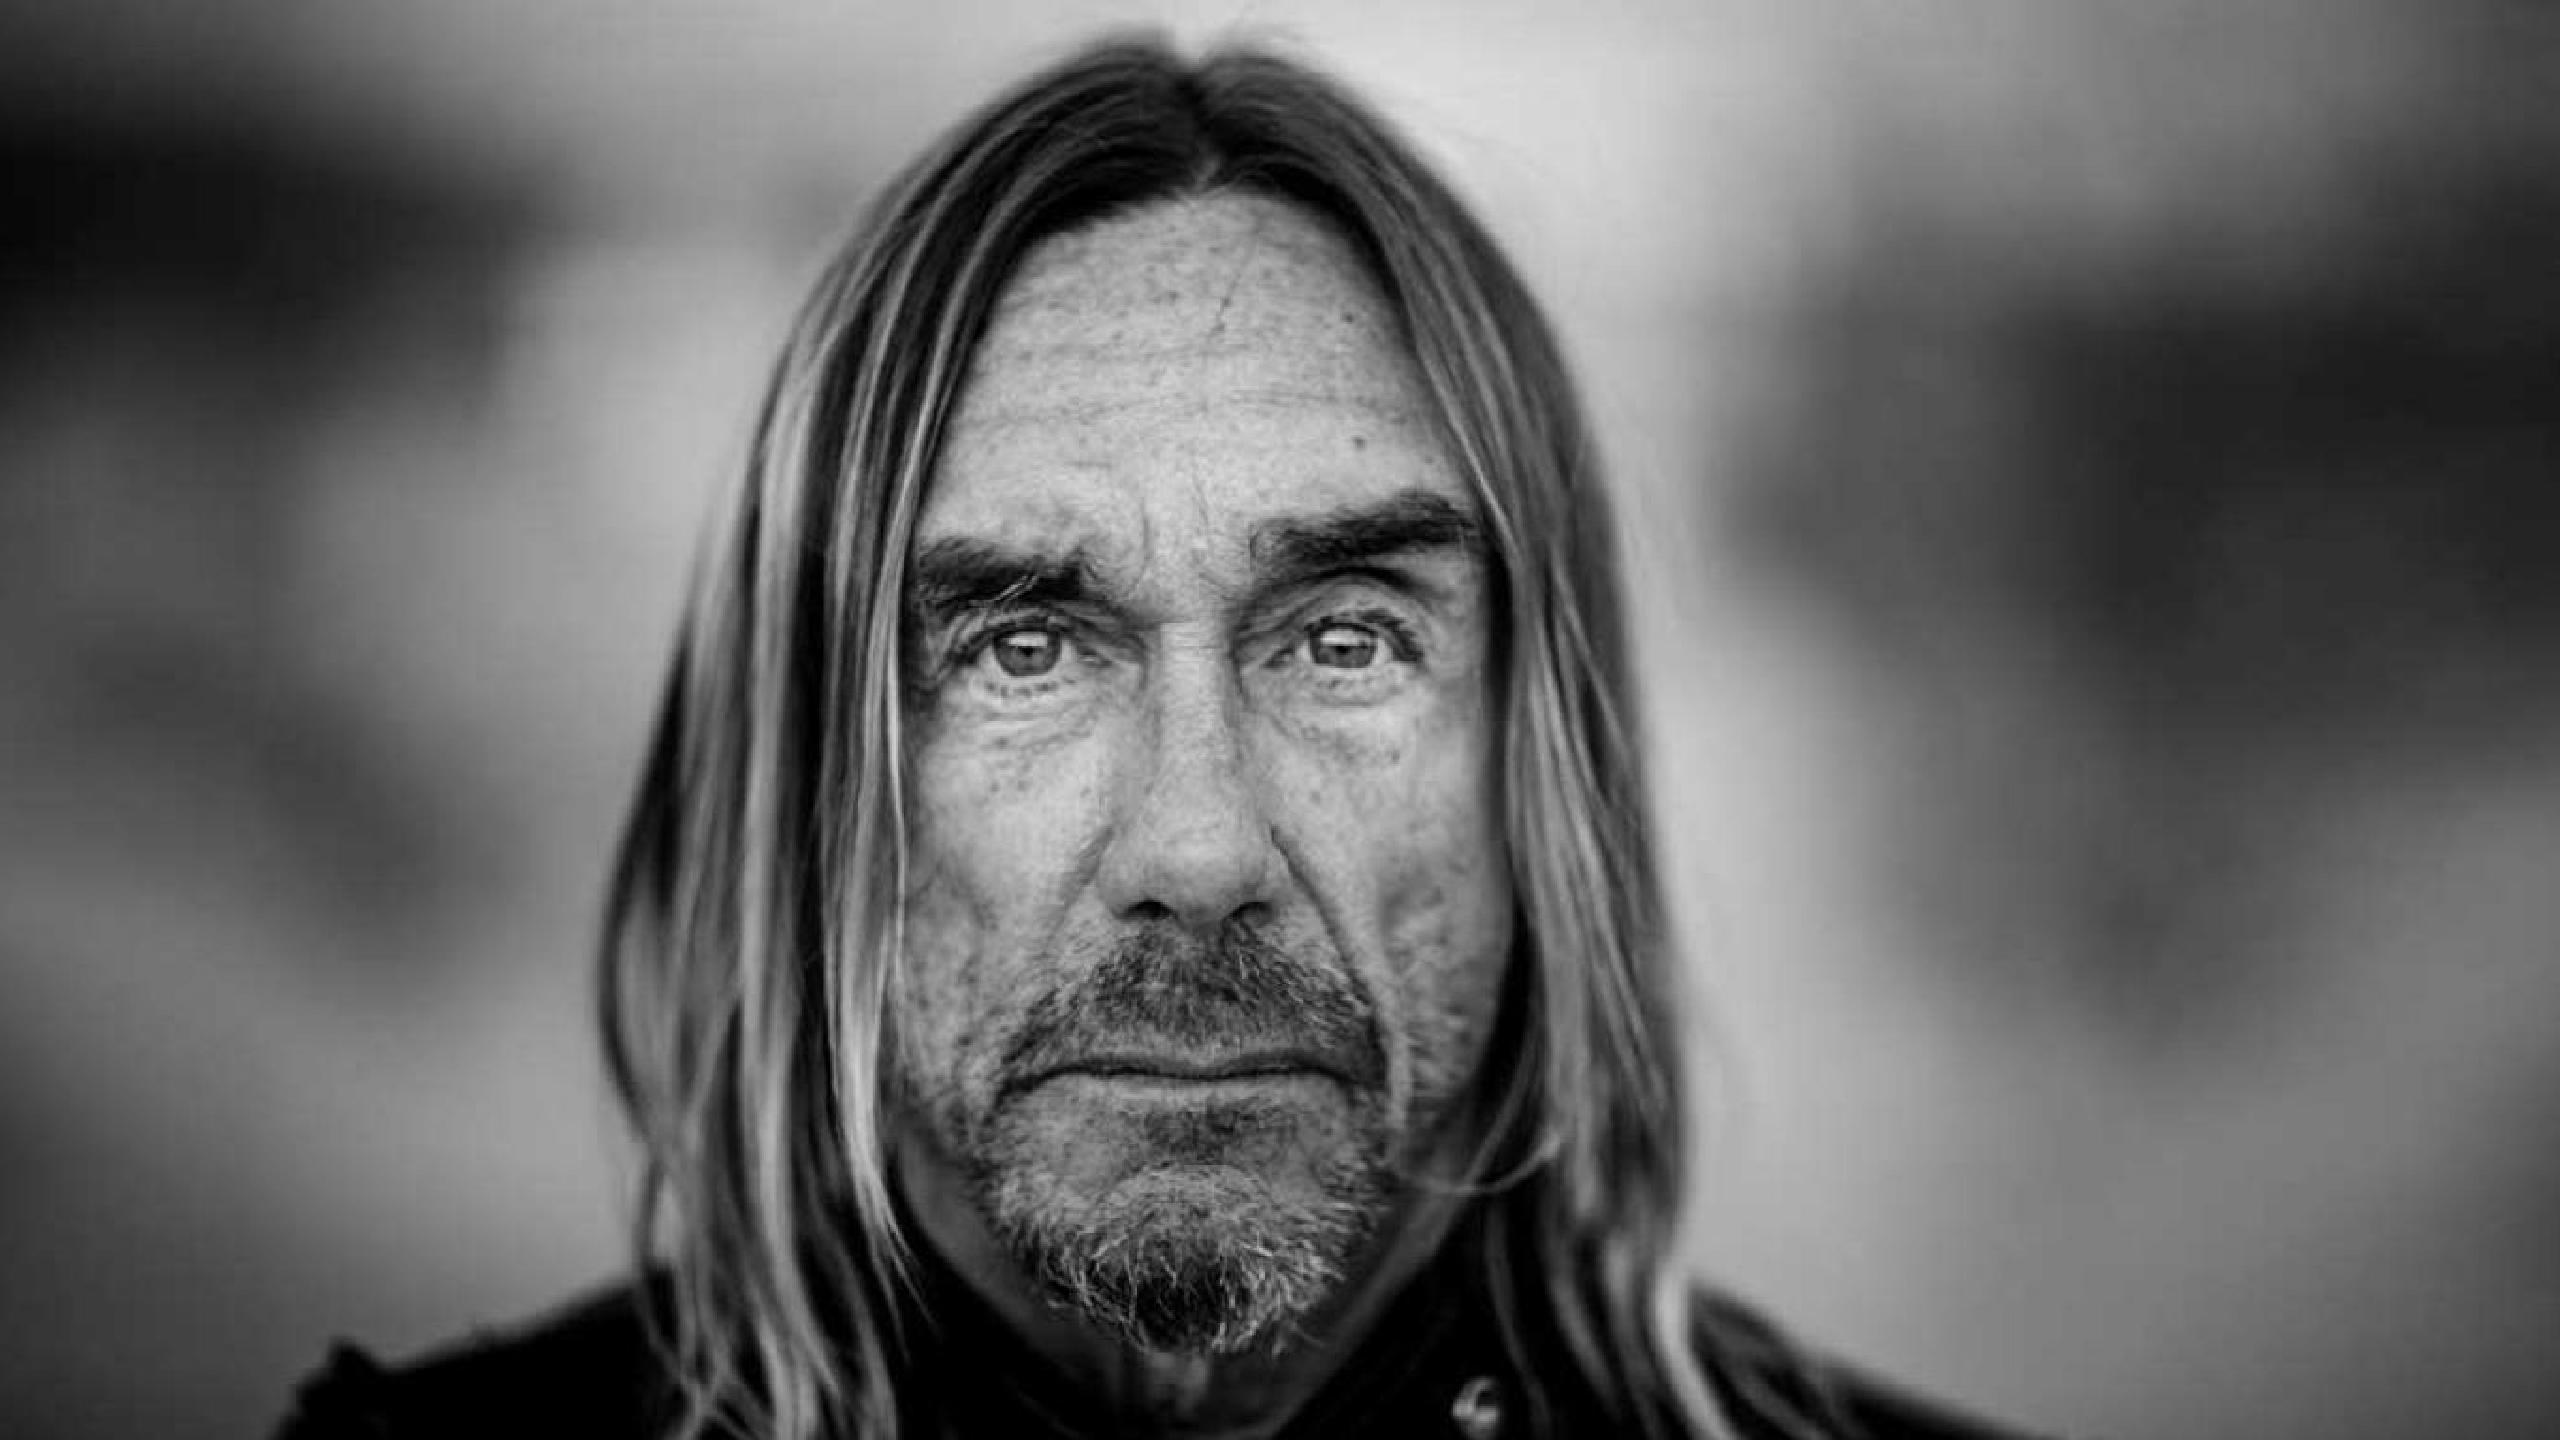 Iggy Pop Tour 2020 Iggy Pop tour dates 2019 2020. Iggy Pop tickets and concerts